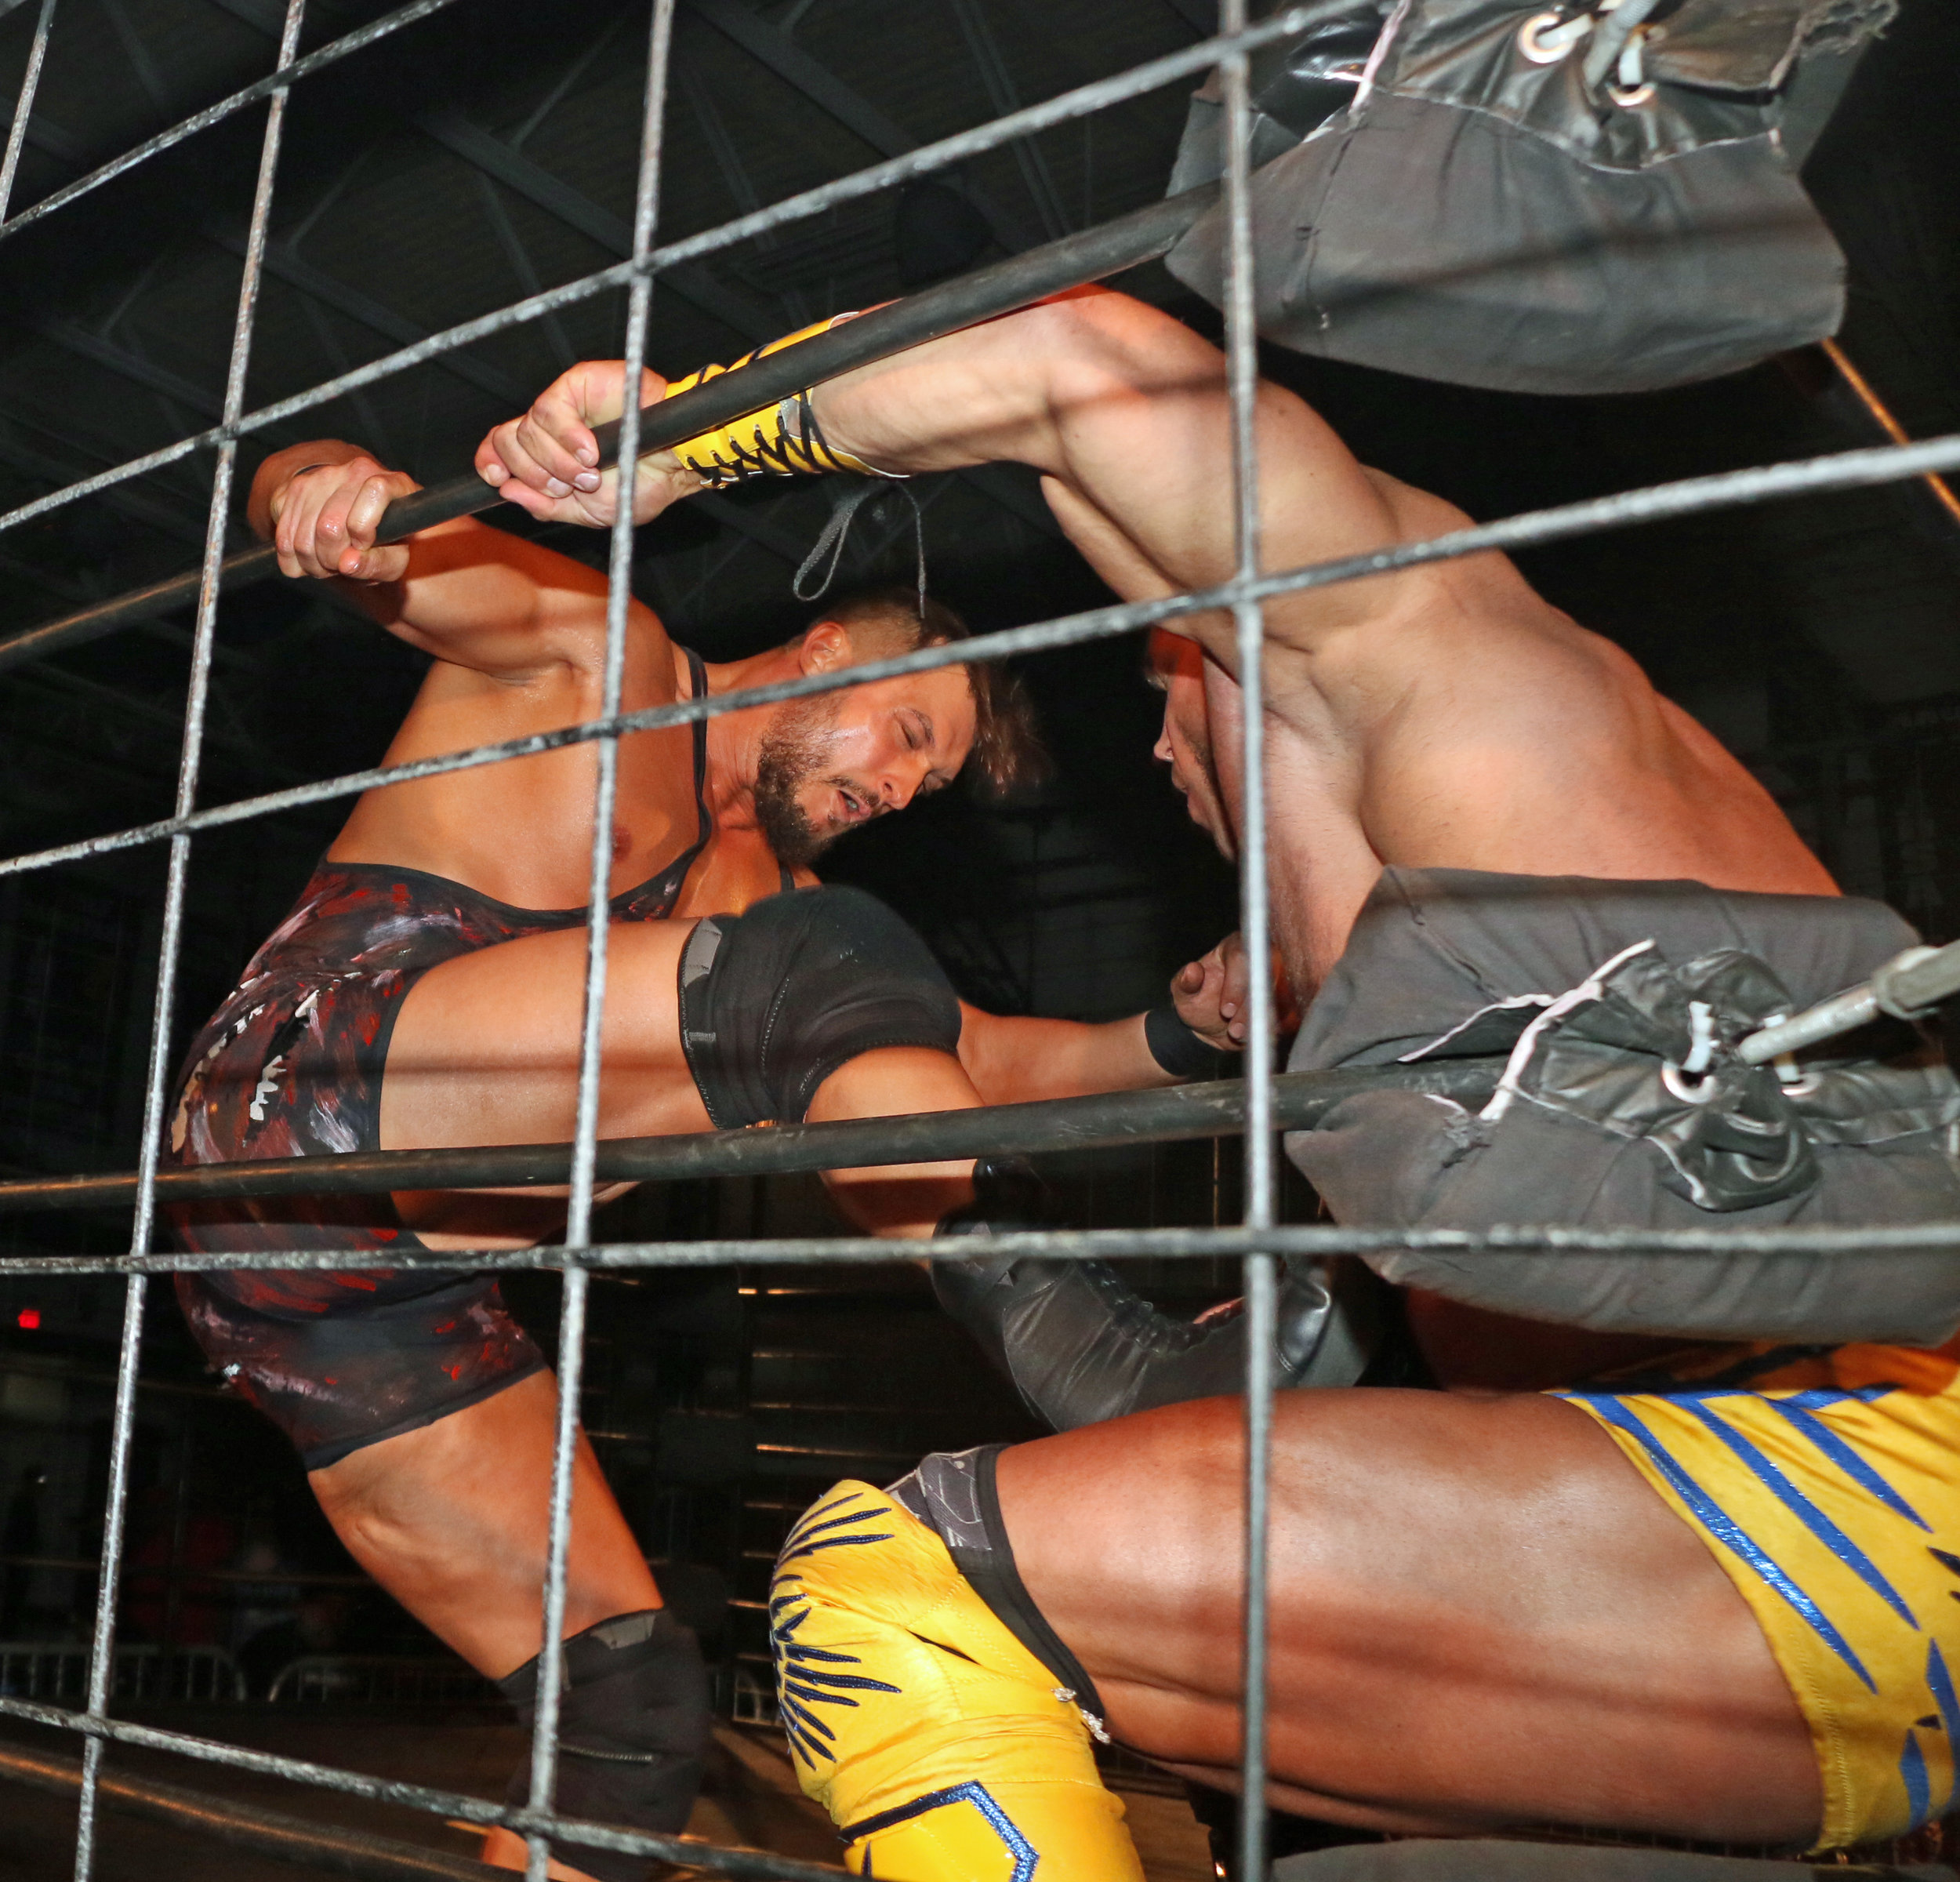 Wardlow stomps Brian Cage in the corner during the three-way cage match for the Warrior Wrestling Championship.